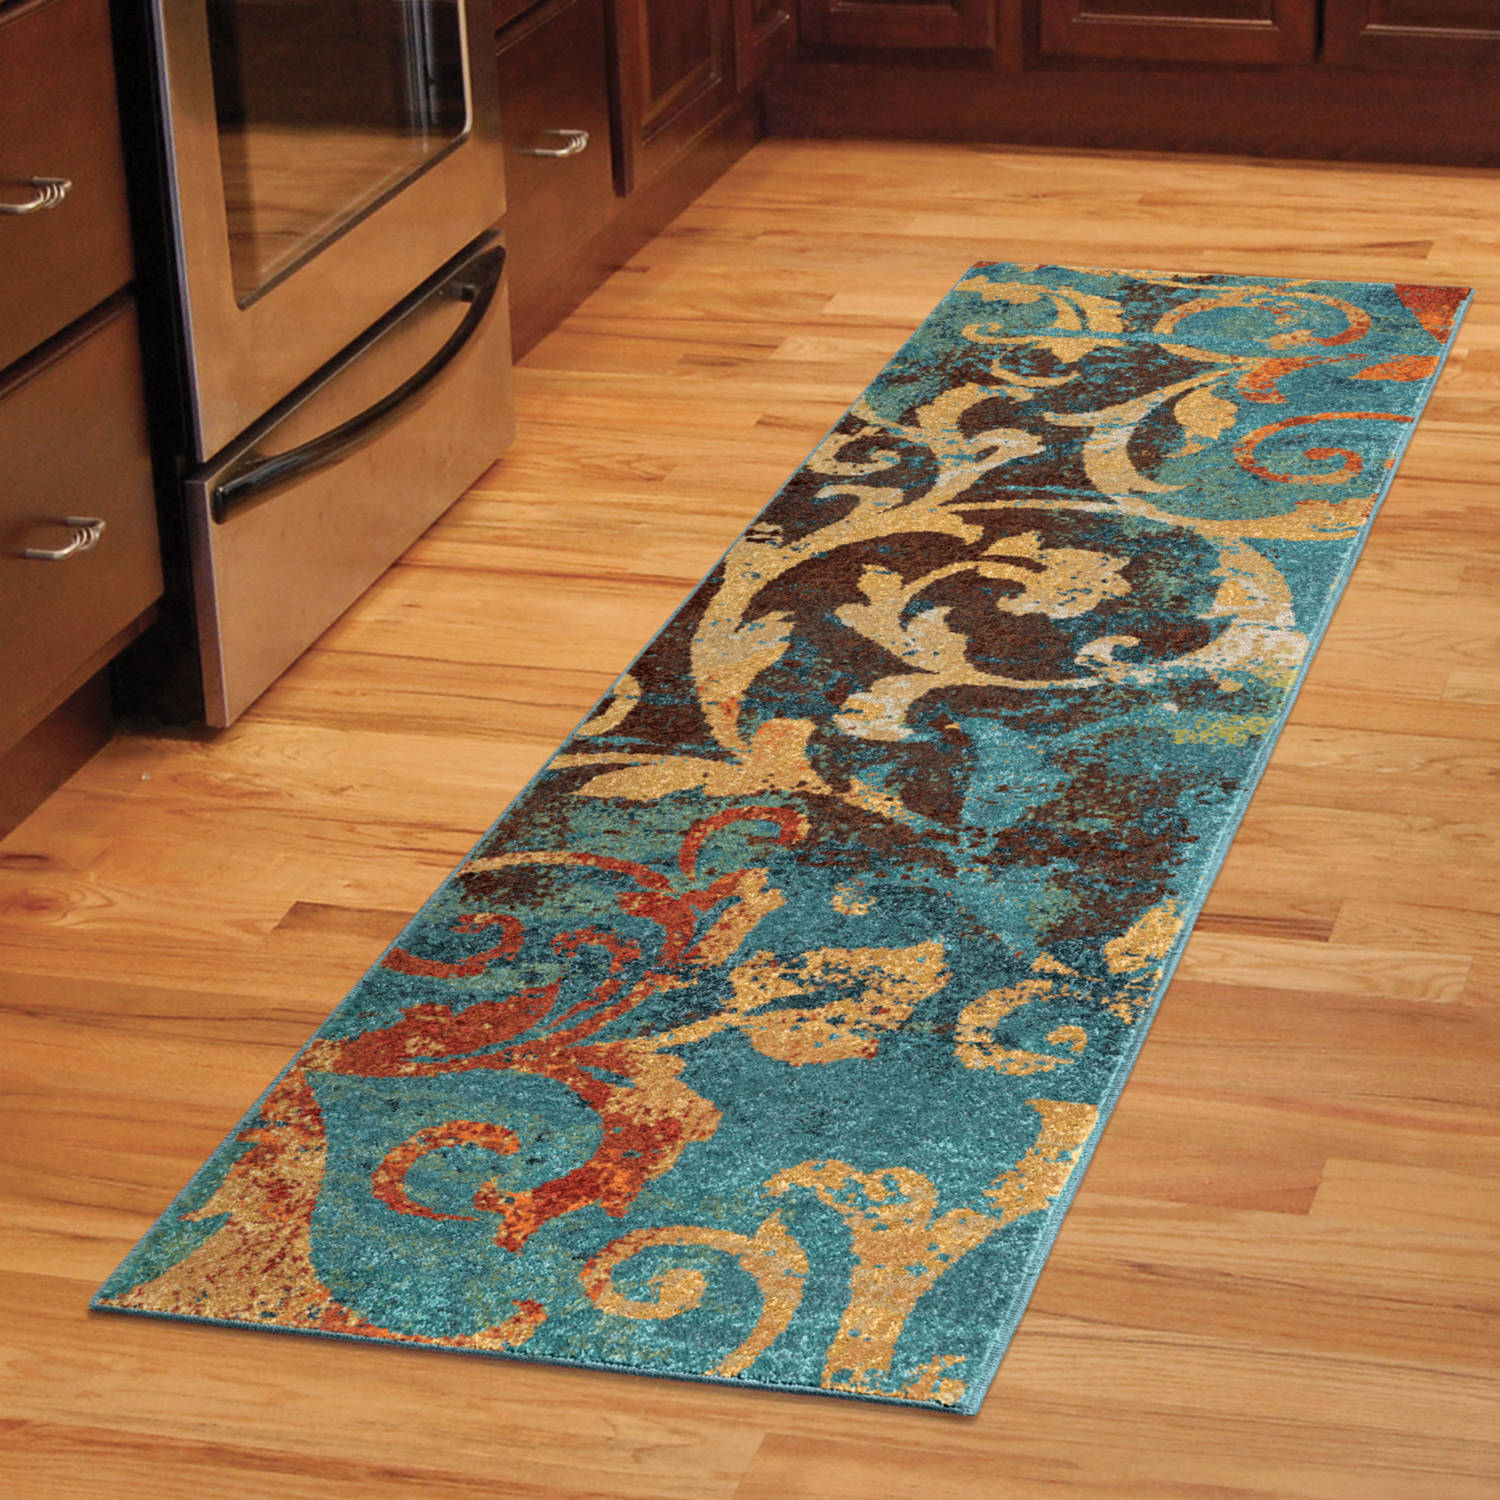 Rug Runner Rug: Orian Rugs Watercolor Scroll Multi-Colored Area Rug Or